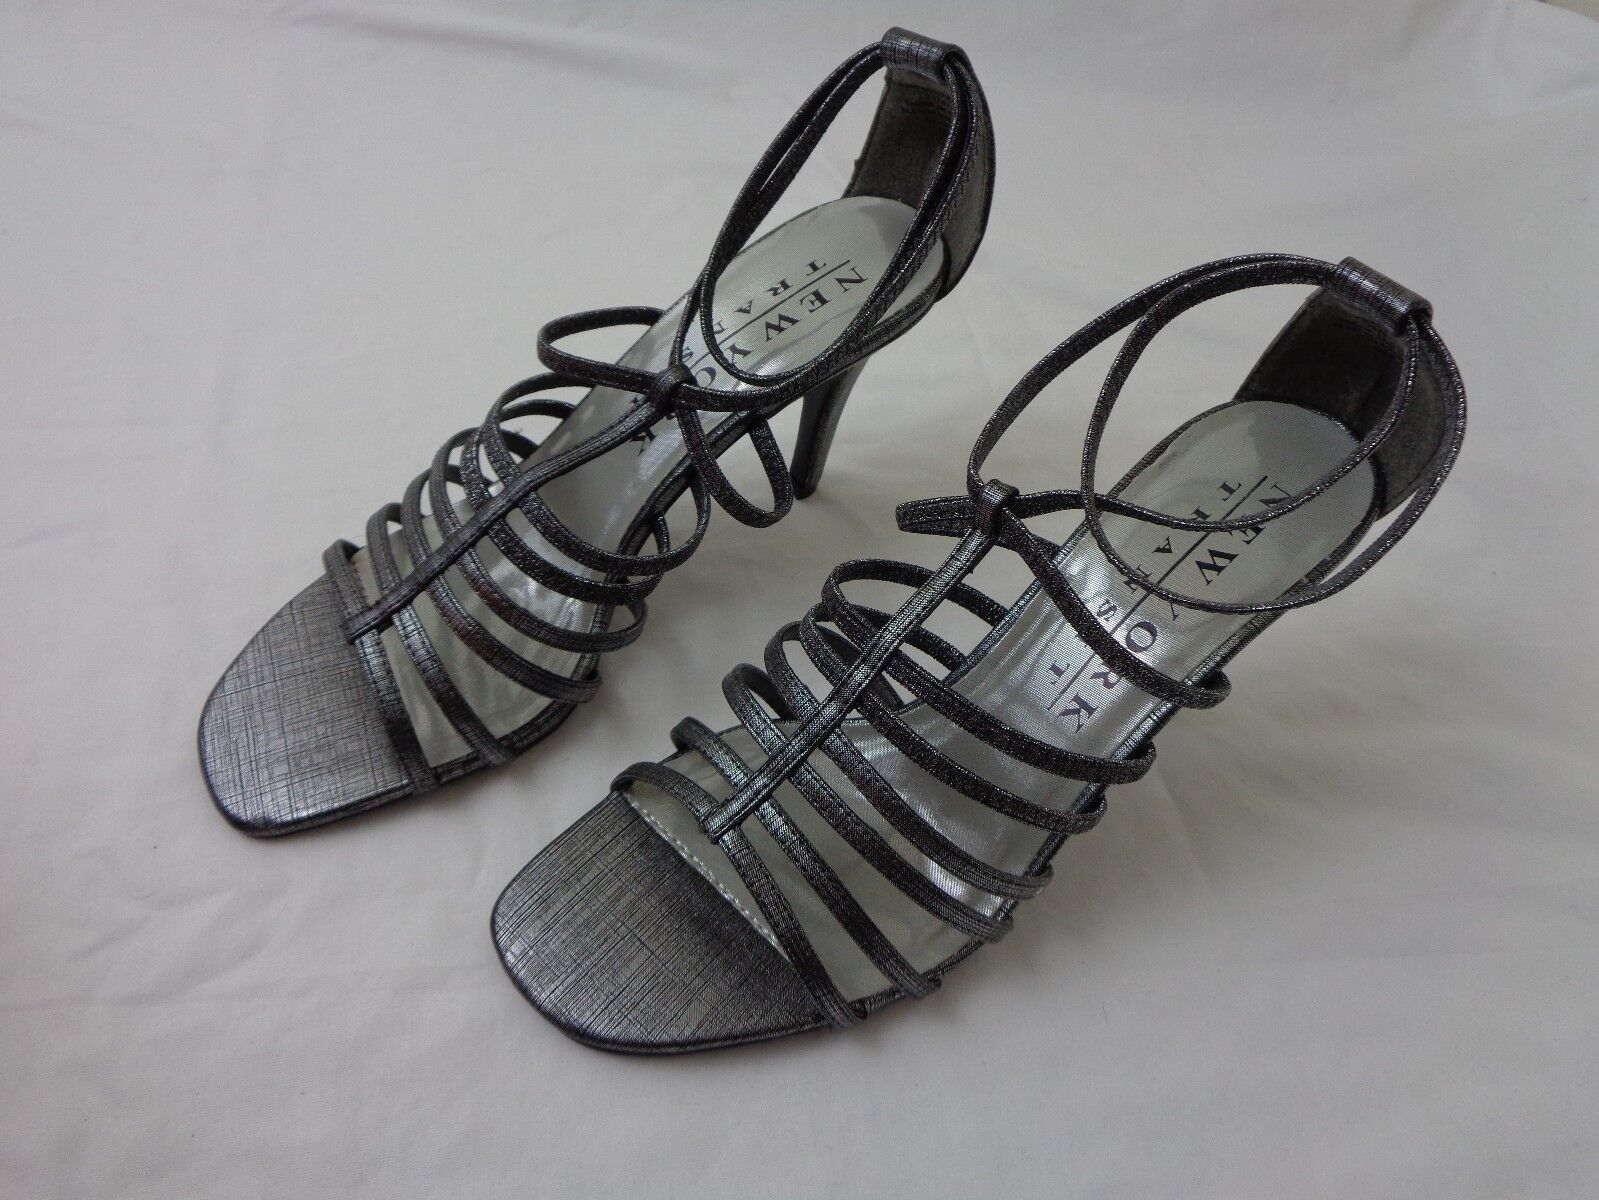 Vintage New York Transit Silver Women's High Shoes Heel Shoes High Size 9M 383c95